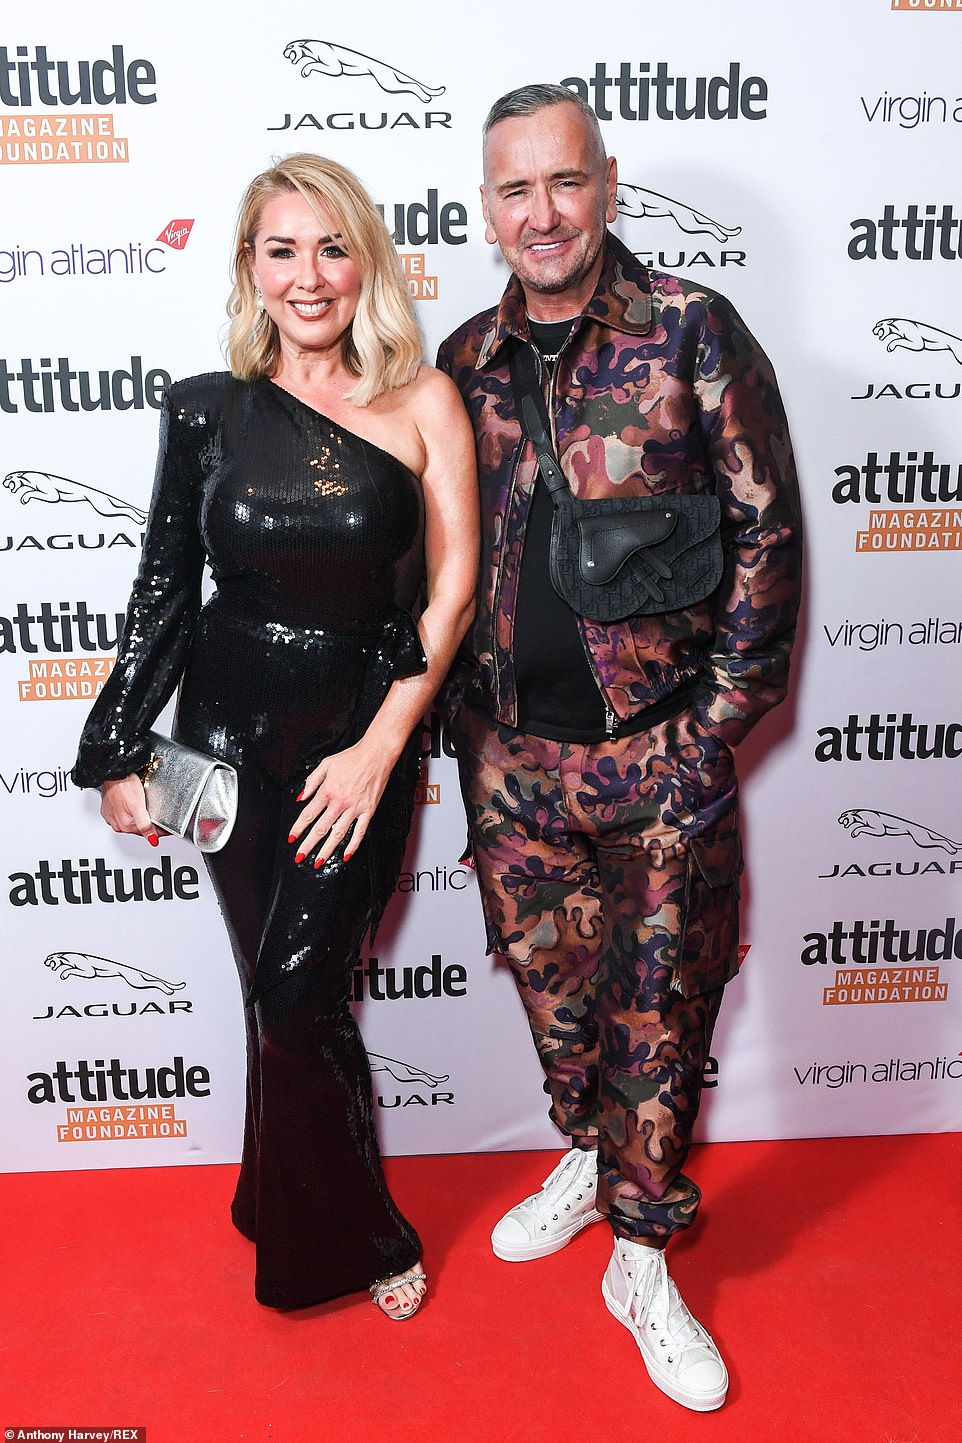 Quirky: DJ Fat Tony showed off his sense of style in a gold suit as he posed with a glamorous lady